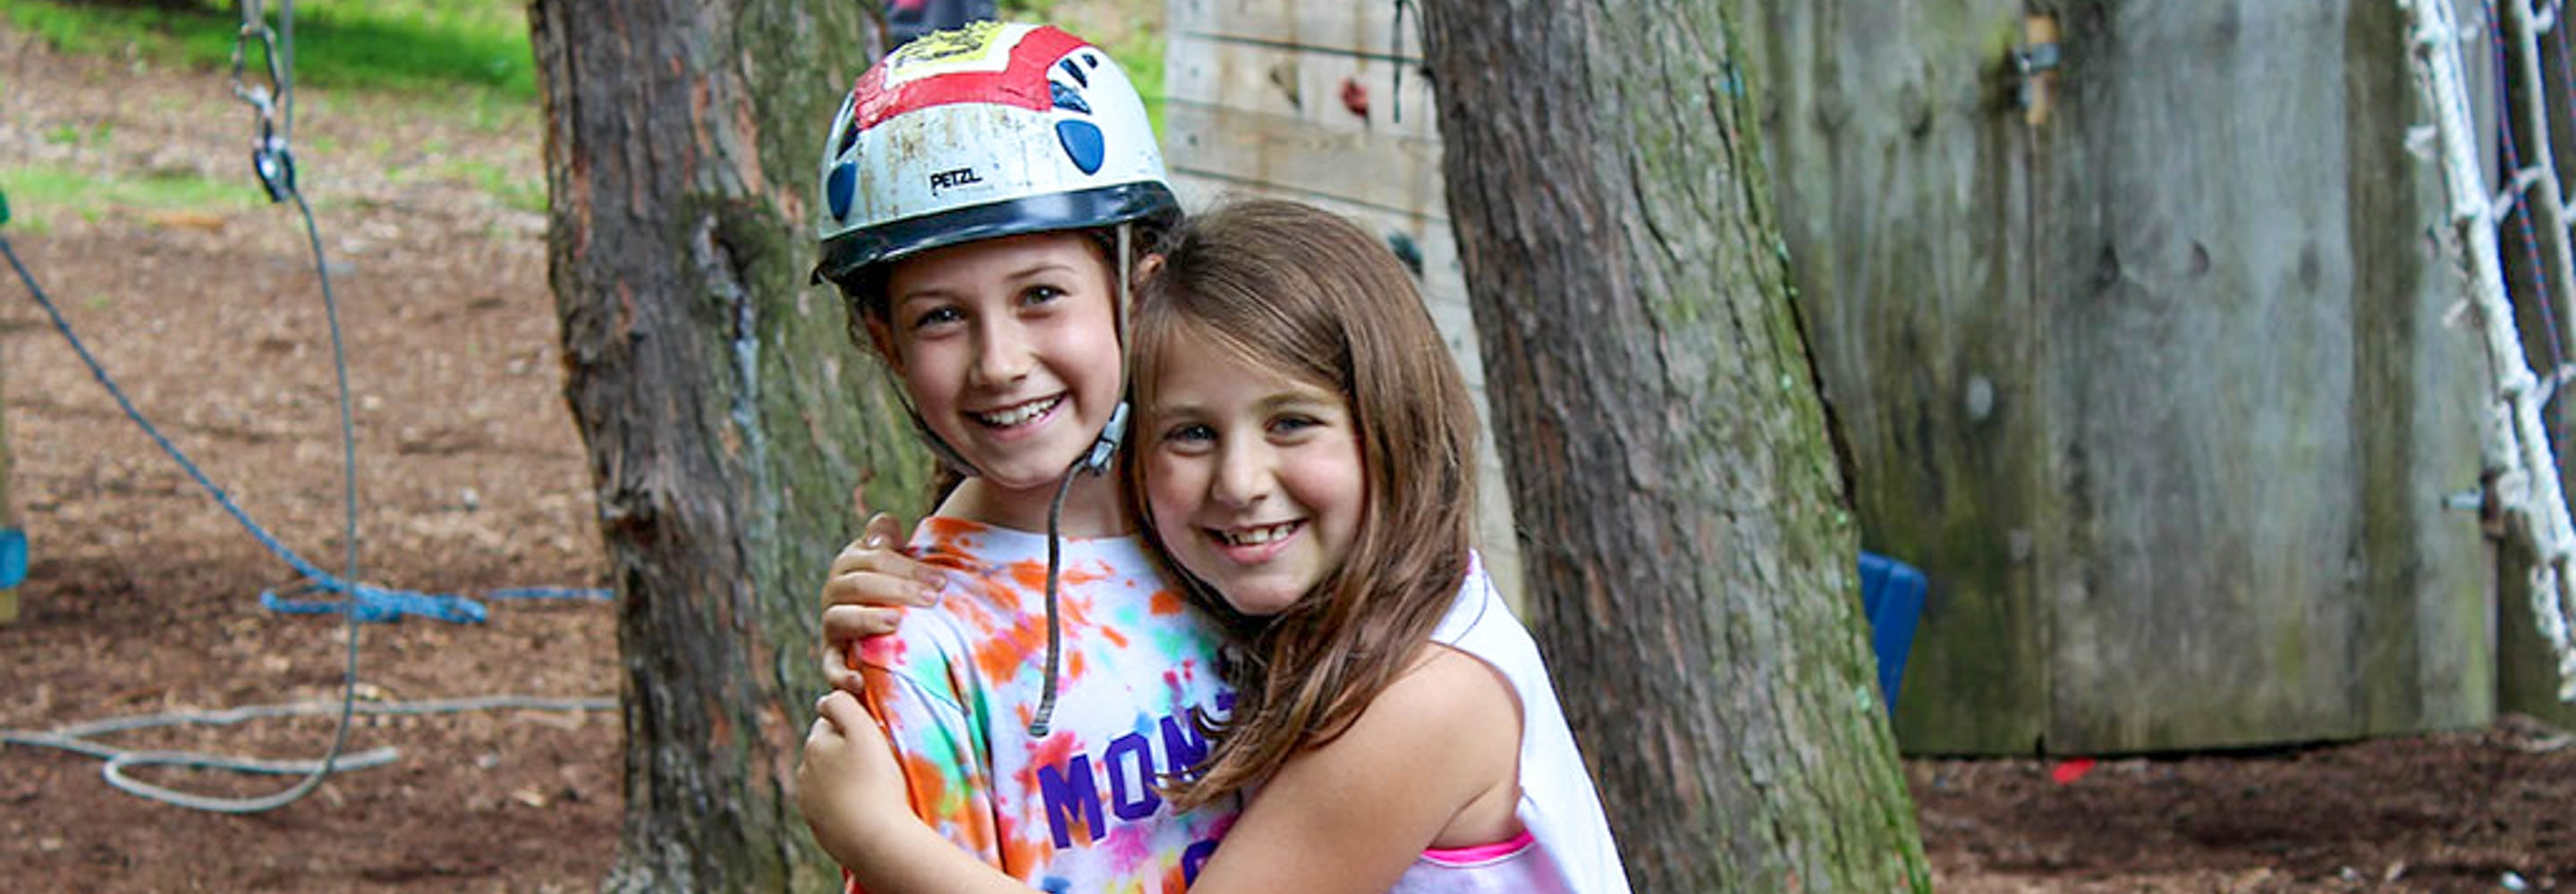 girl campers by climbing tower